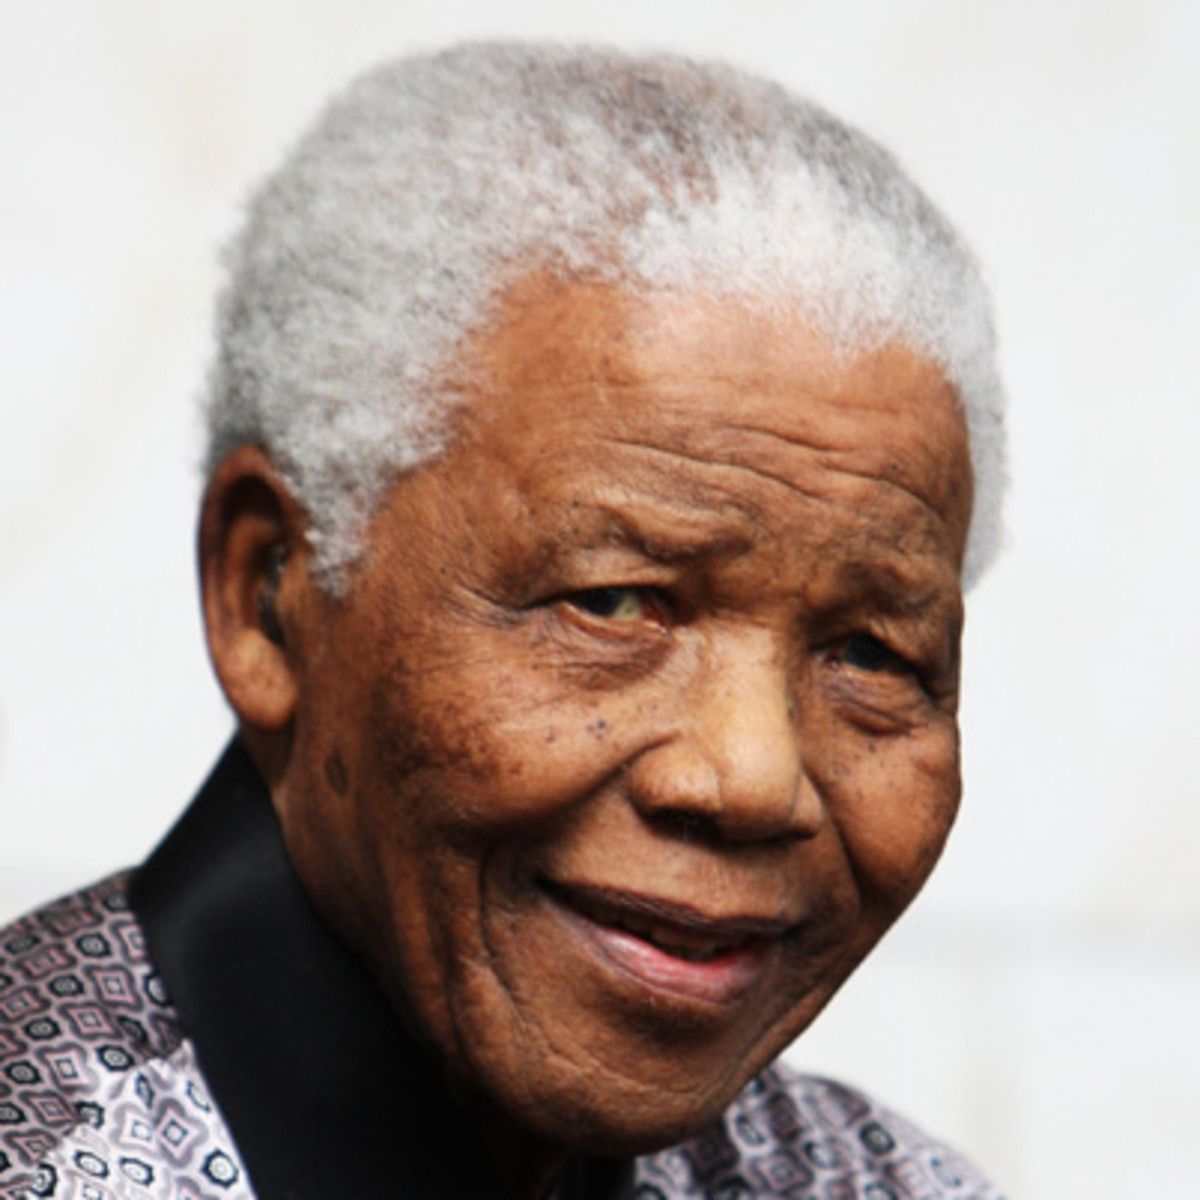 the history of south africa and nelson mandelas contribution Nelson mandela saw sport as way to connect s africans  charles p korr is  history professor emeritus at the university of missouri-st louis.